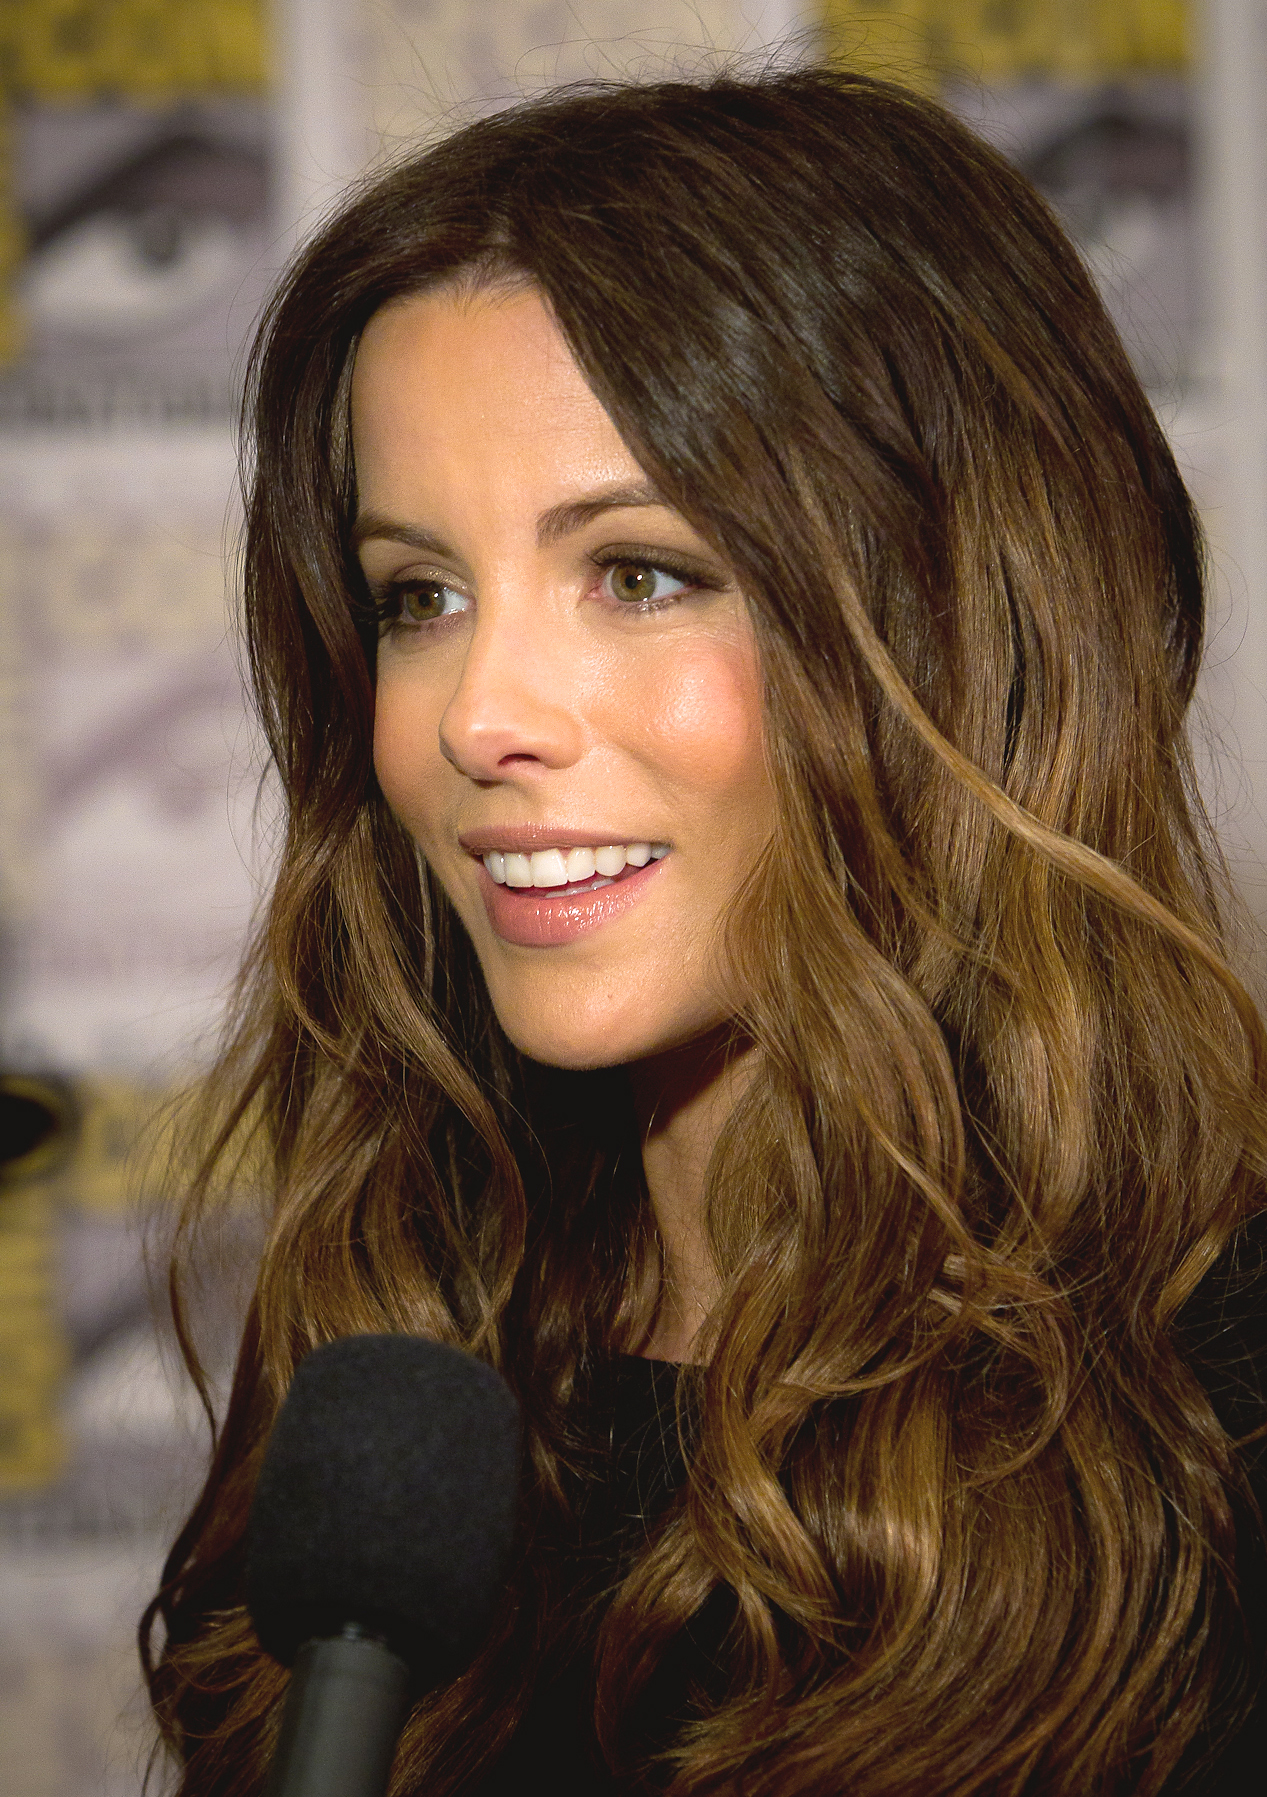 Kate Beckinsale - Wikipedia Kate Beckinsale Trivago